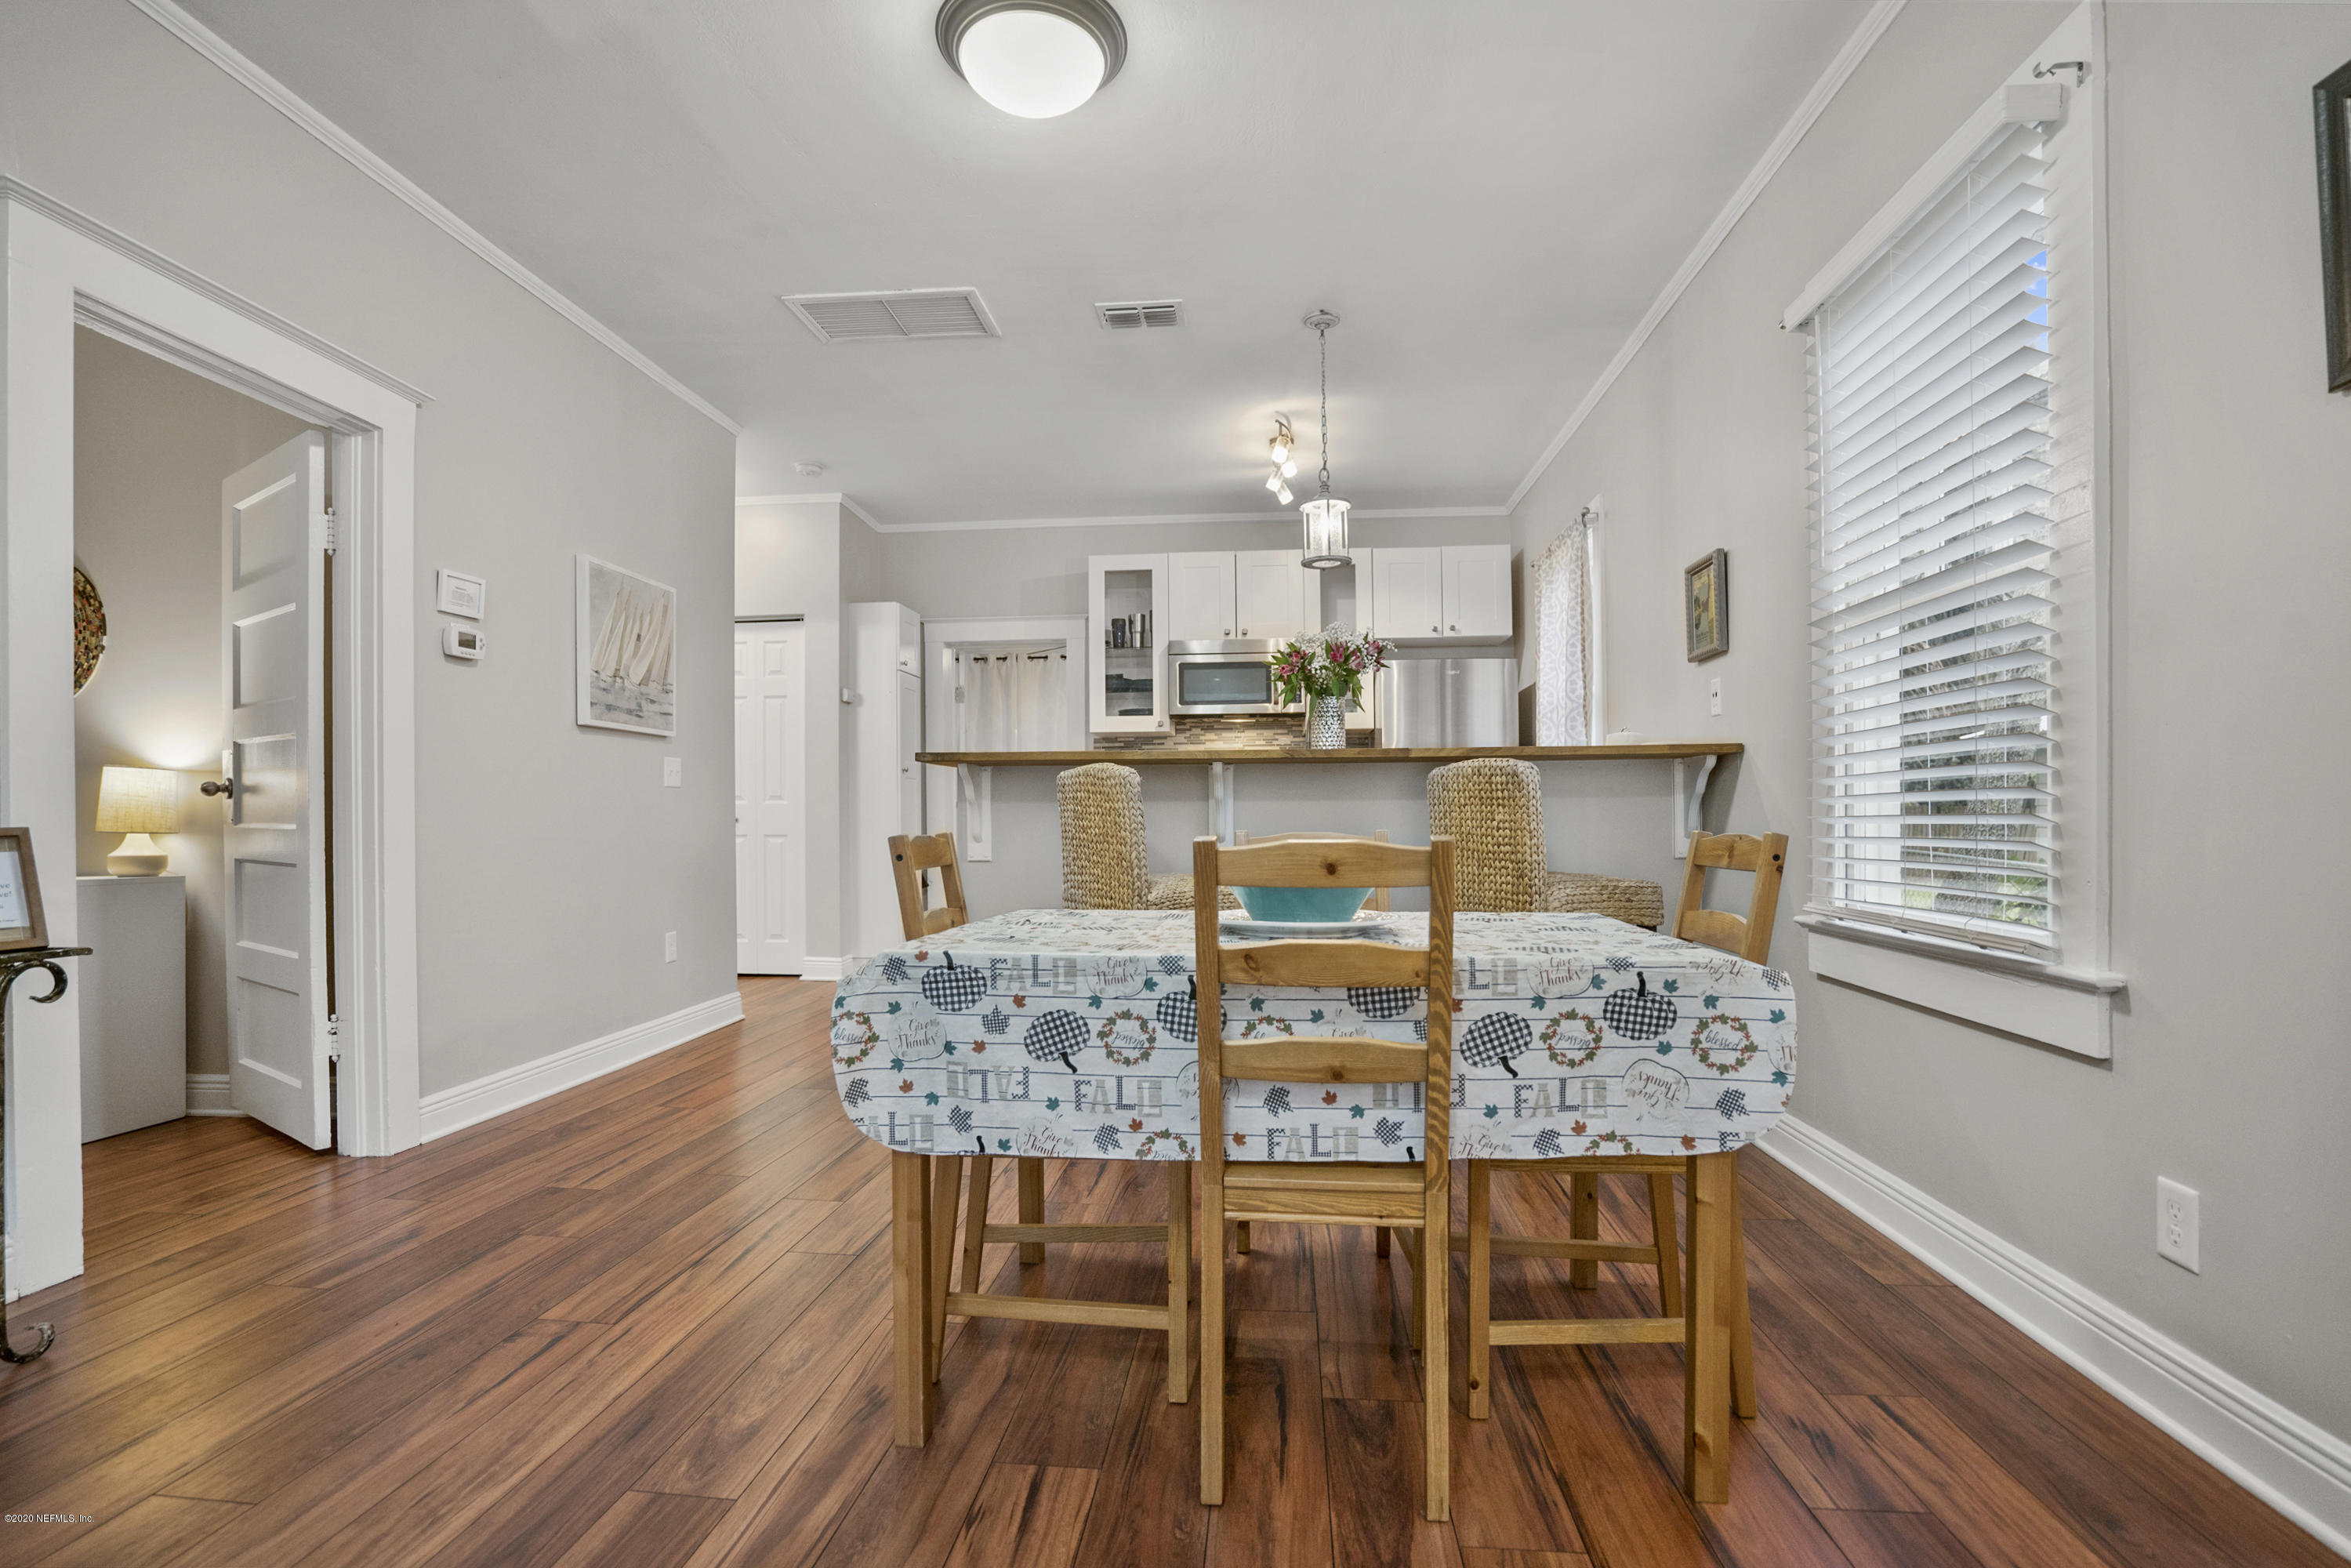 7 PARK, ST AUGUSTINE, FLORIDA 32084, 2 Bedrooms Bedrooms, ,1 BathroomBathrooms,Residential,For sale,PARK,1082224